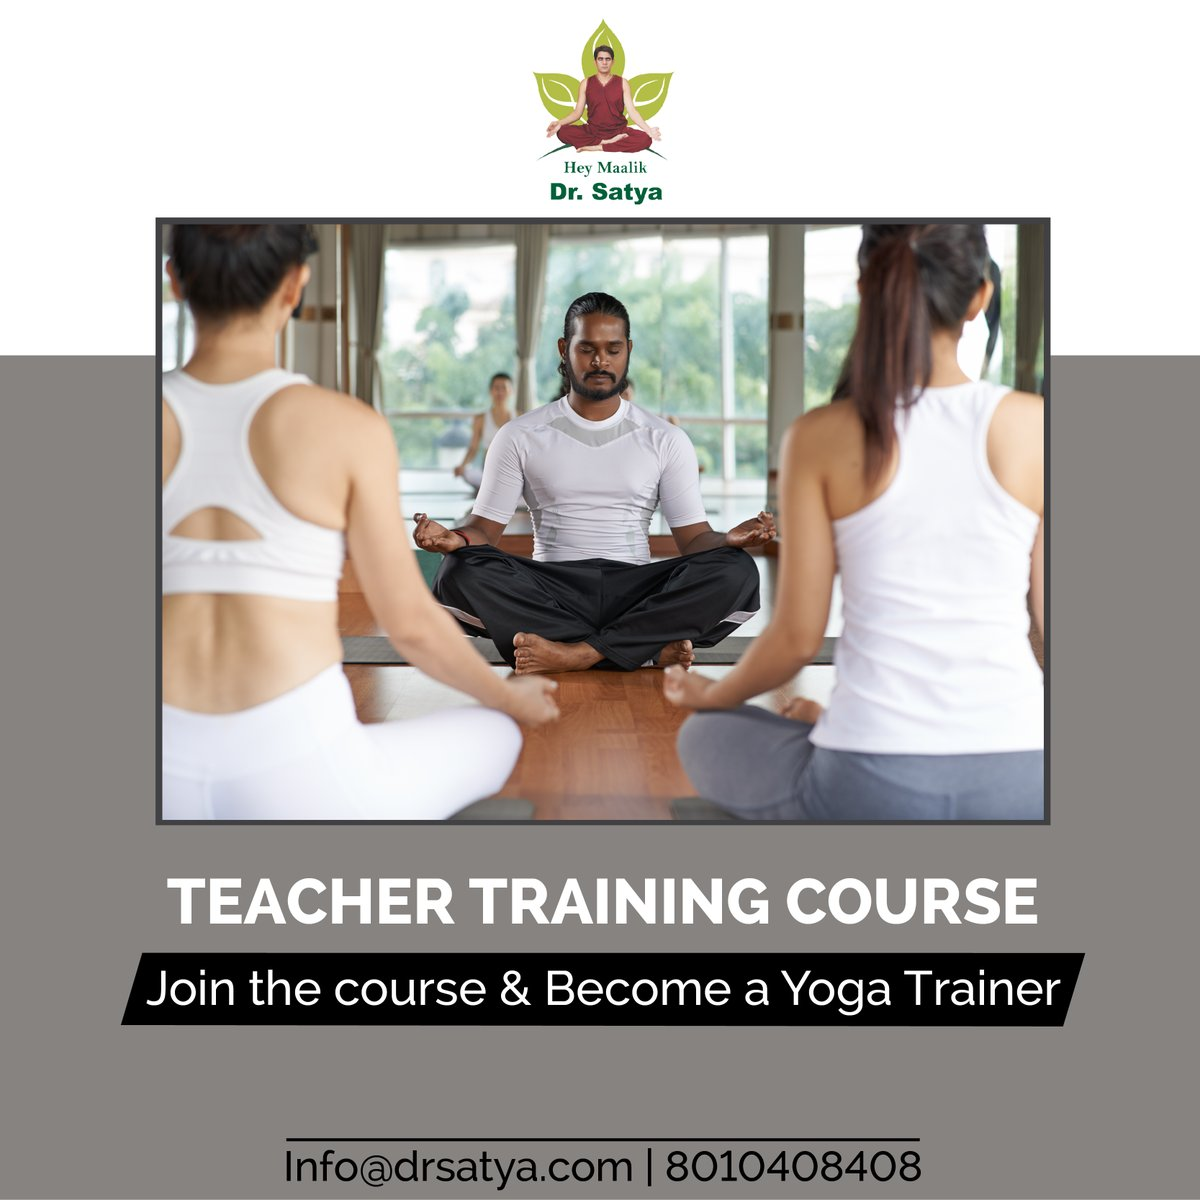 Become a certified yoga #teacher with 200hrs Dr. Satya's Yoga Teacher #Training #Course! Regular and Weekend classes available. For further details call us at 8010408408 OR Mail your query at info@drsatya.com #holisticcenter #wellness #yoga #love #healingcenter #vegan #origen